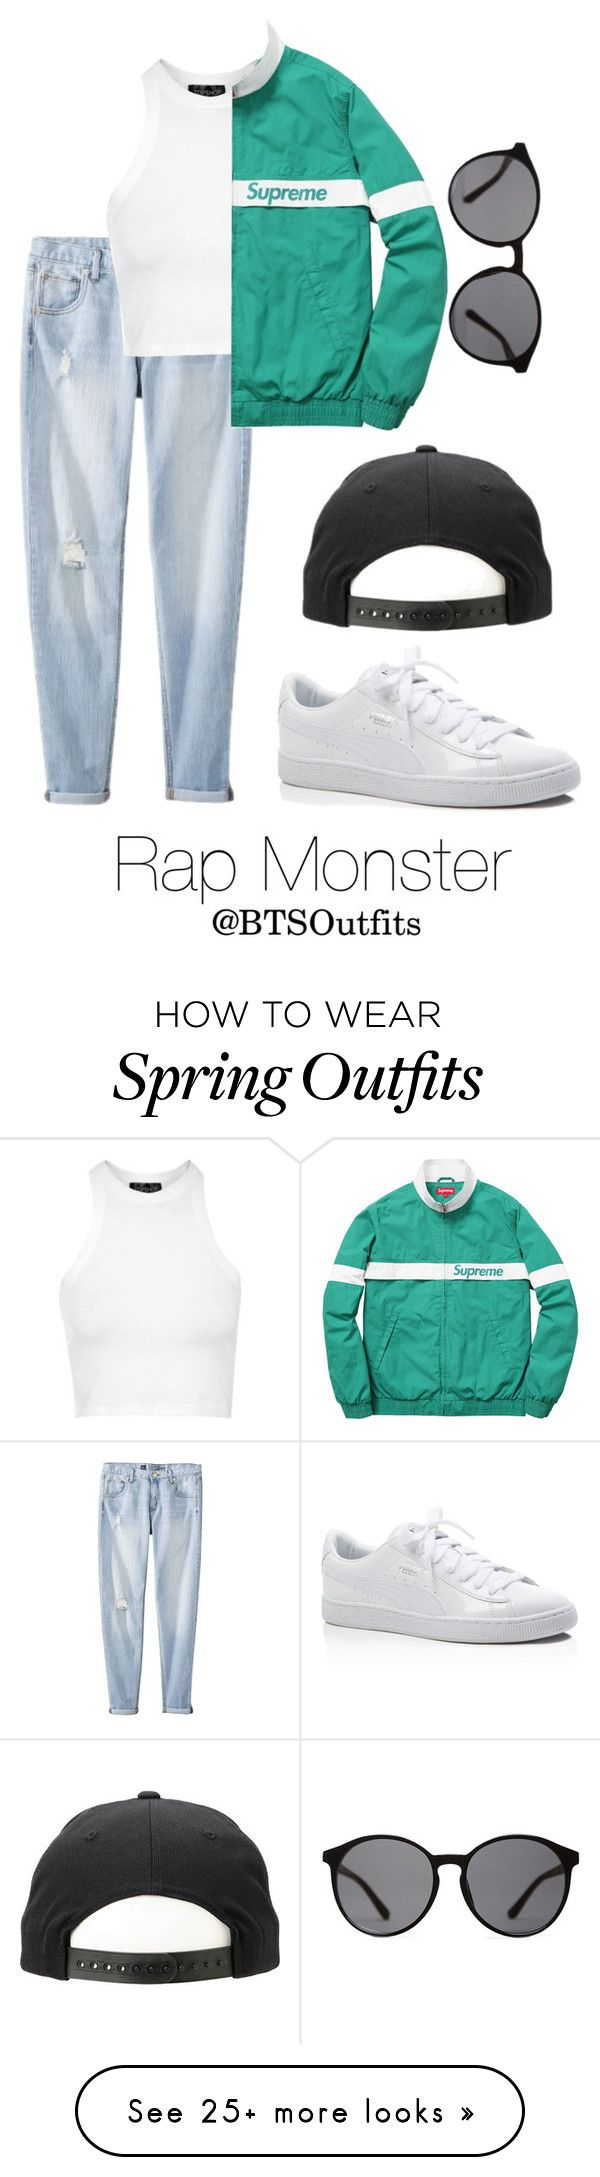 Spring Outfit Inspired by Rap Monster by btsoutfits on Polyvore featuring Mossimo, Topshop, Linda Farrow, Puma, womens clothing, women, female, woman, misses and juniors